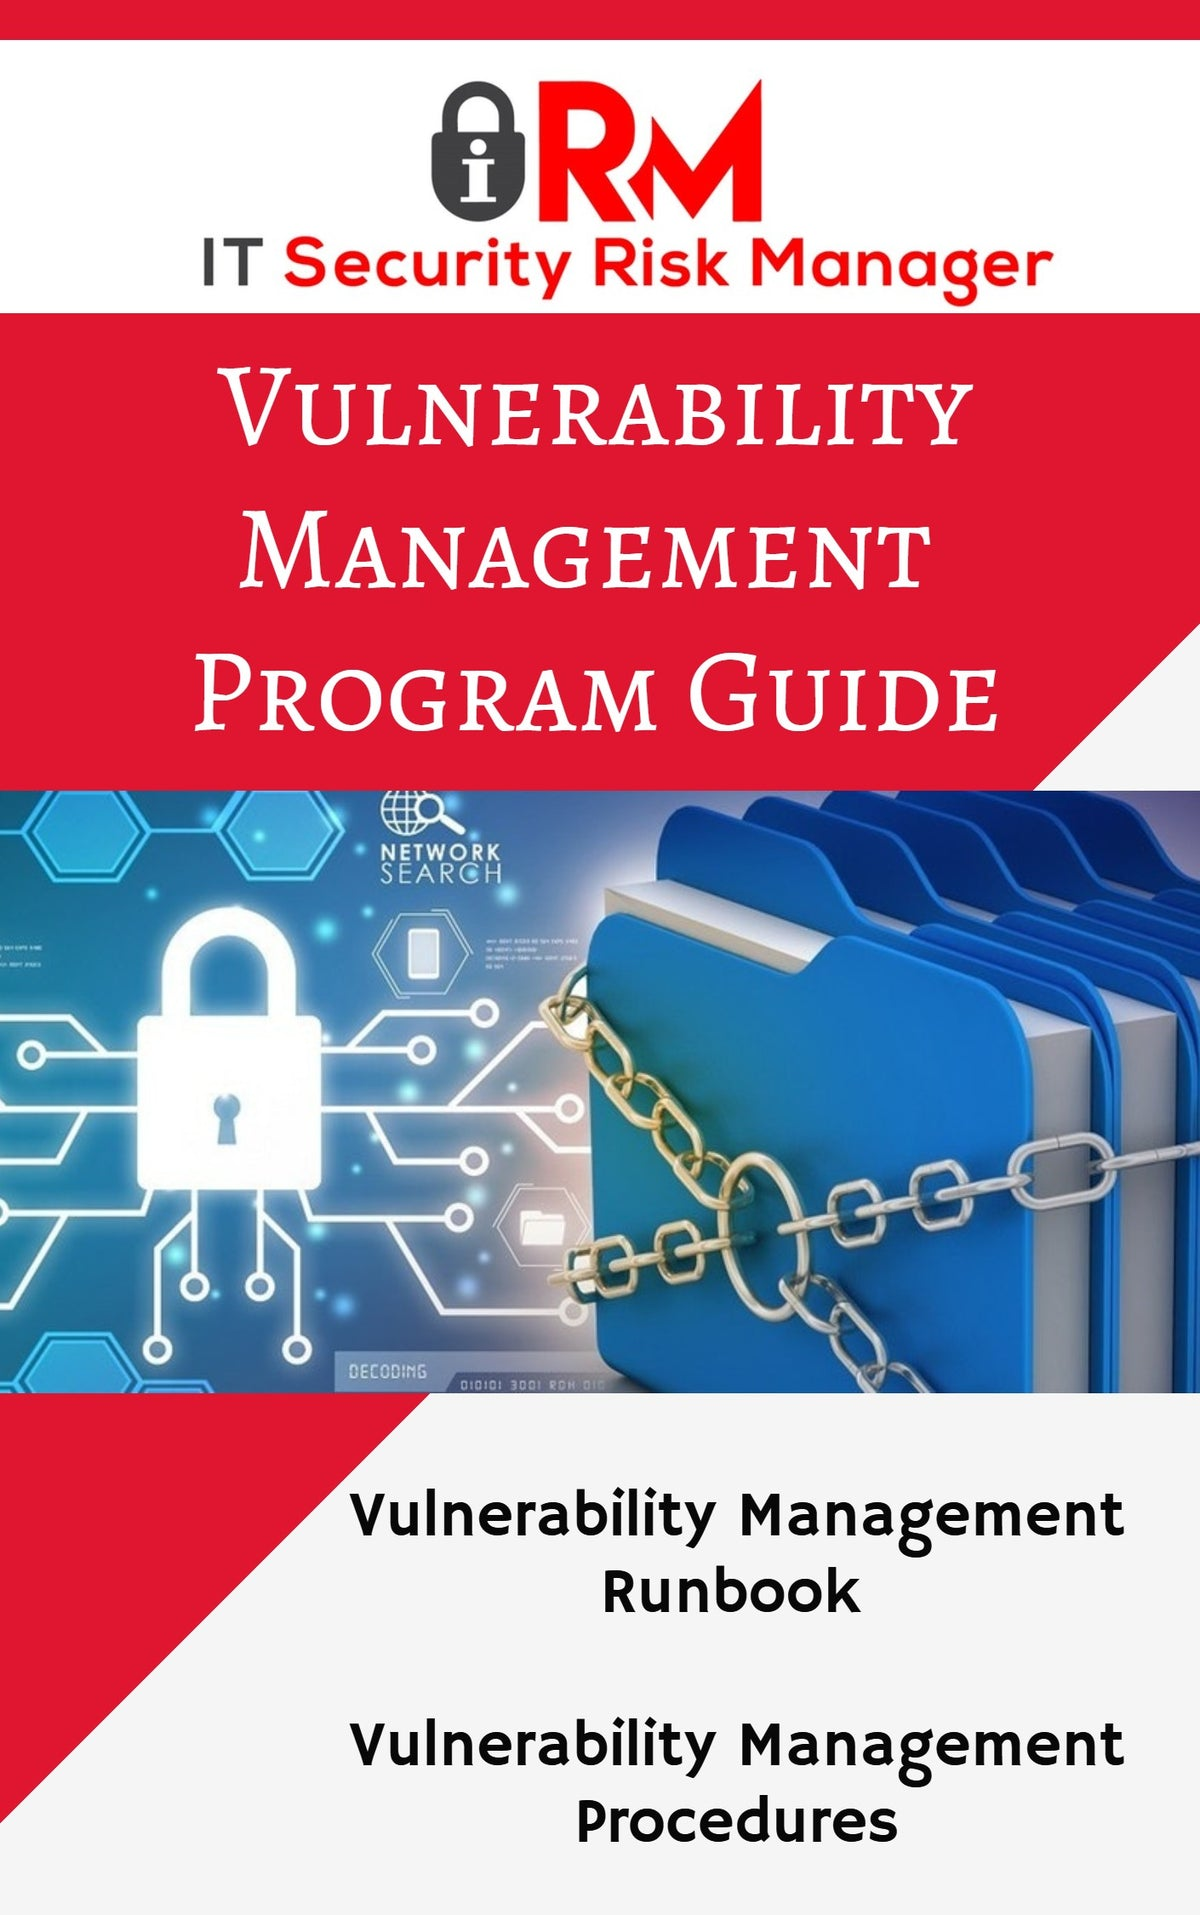 Threat and Vulnerability Program Management Guide